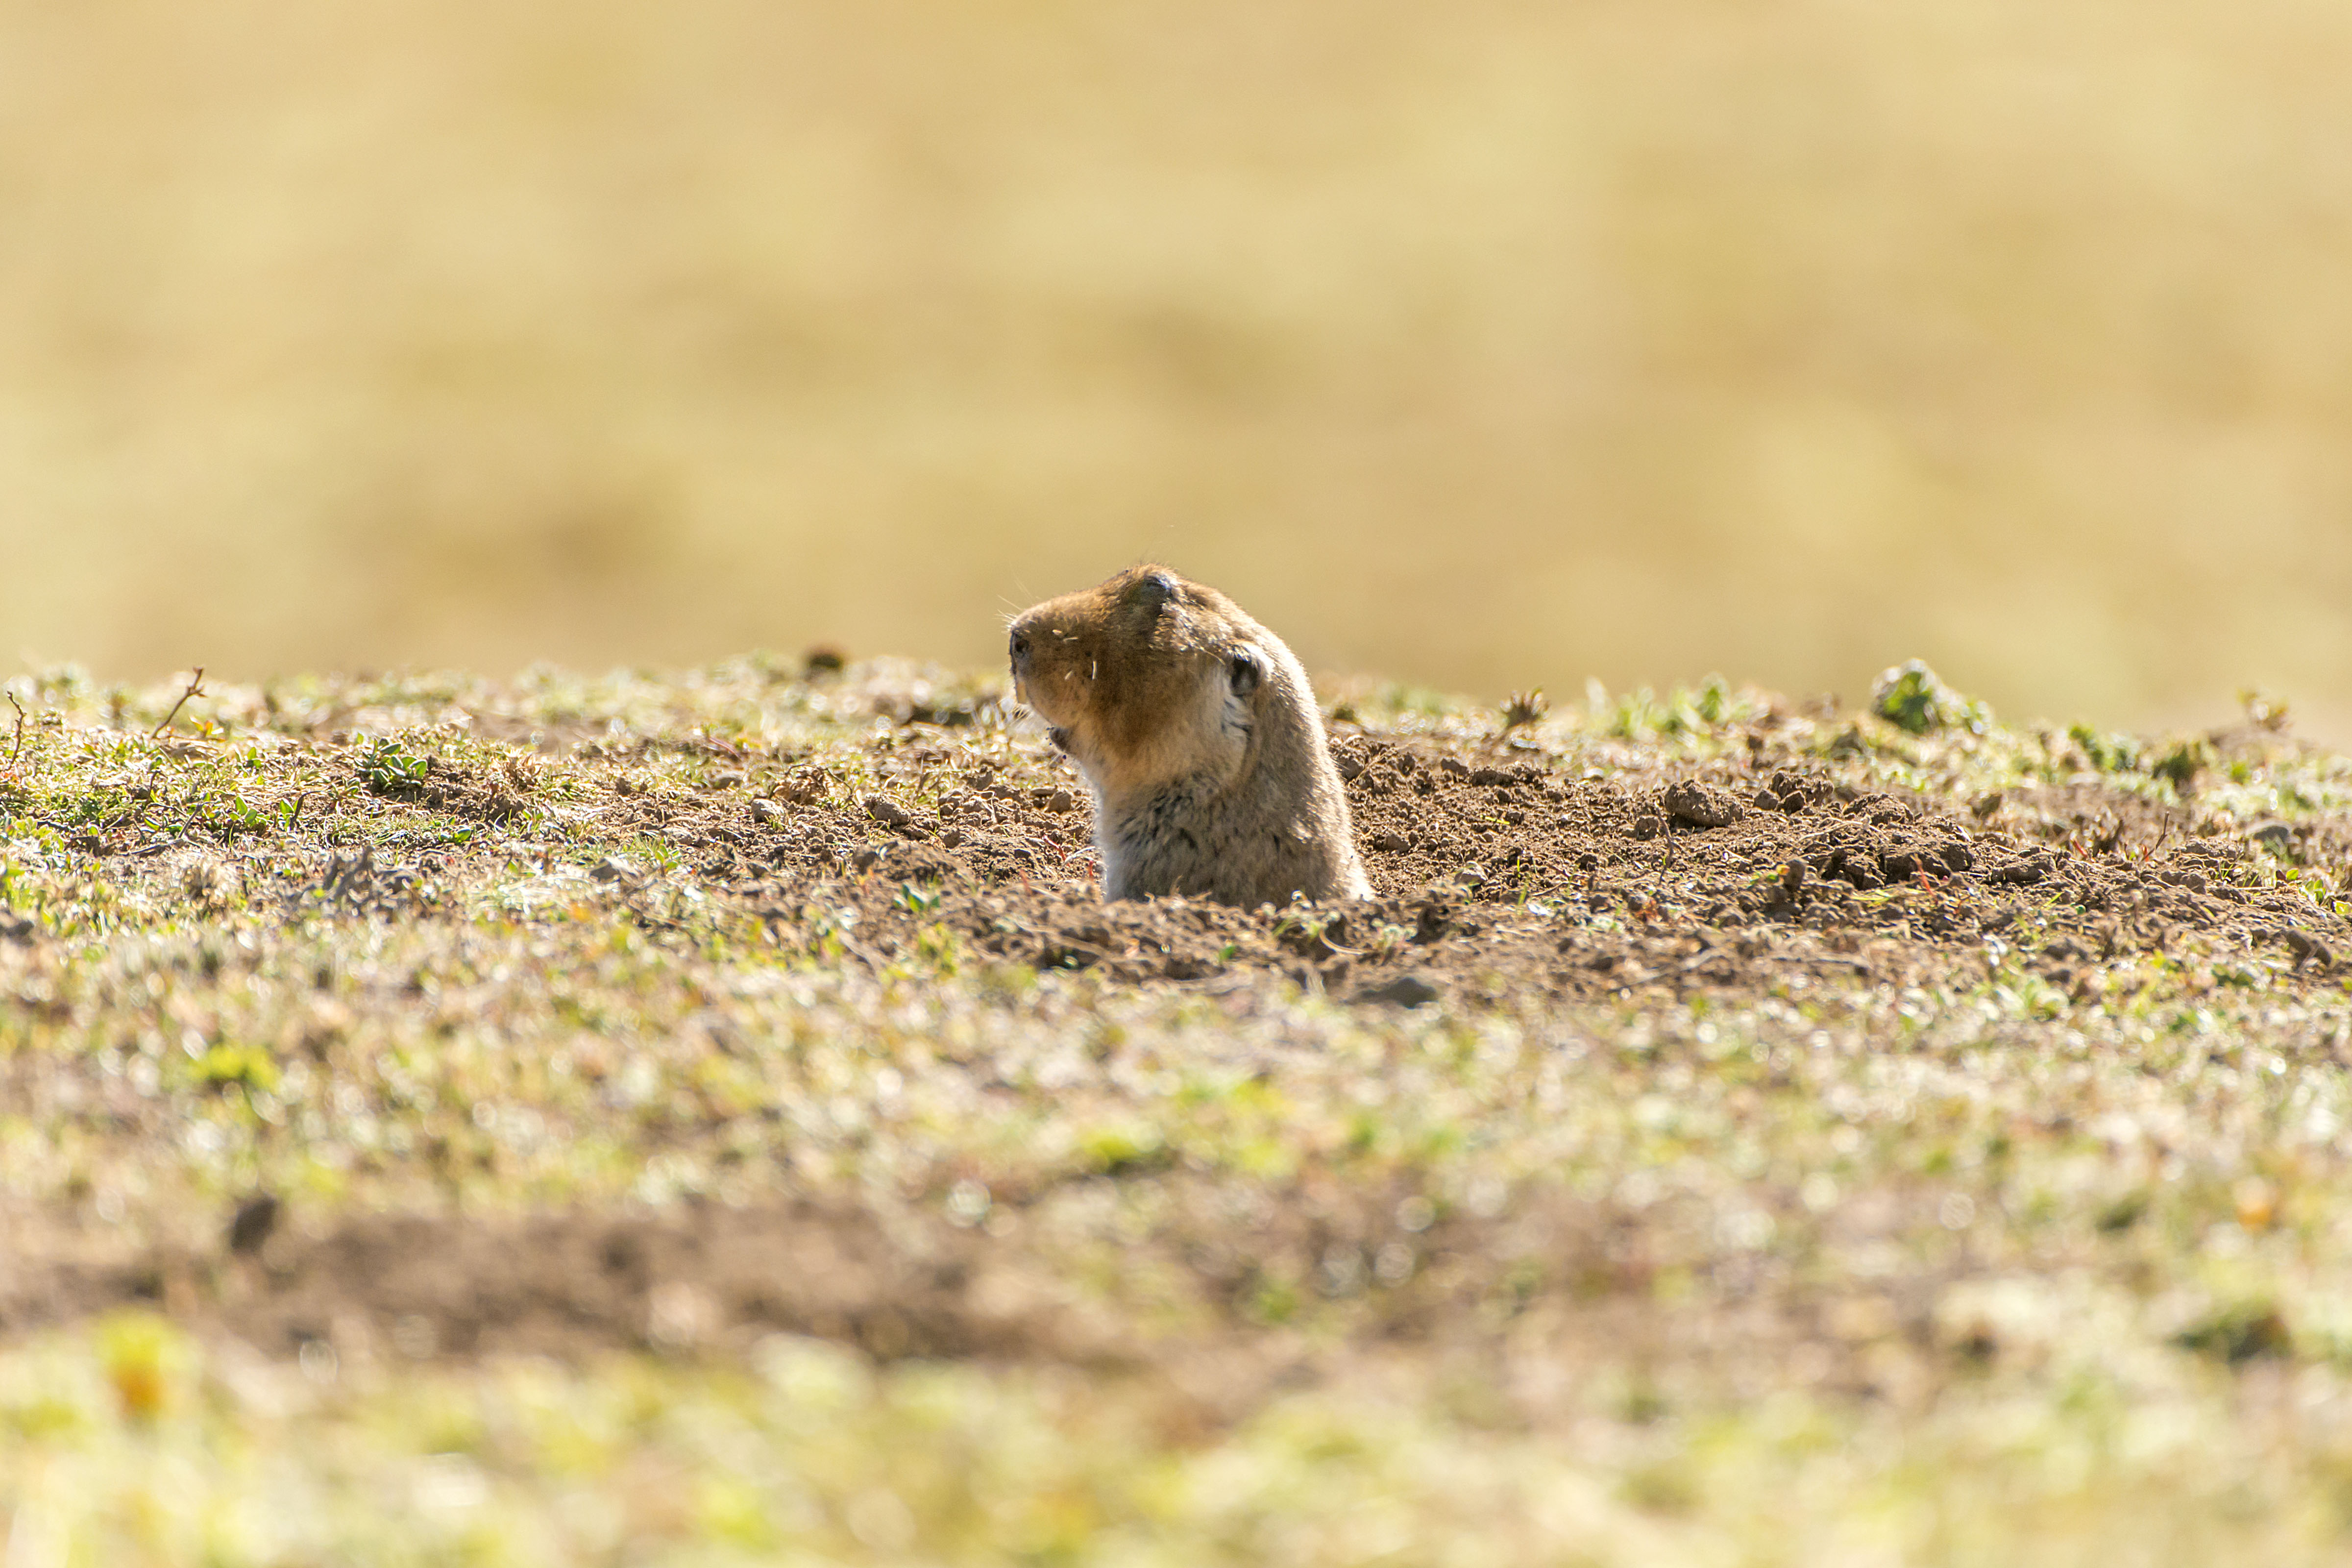 Big-headed-Mole-rat-Sanetti-Plateau-Bale-Mountain-National-Park-by-Larry-Jackson